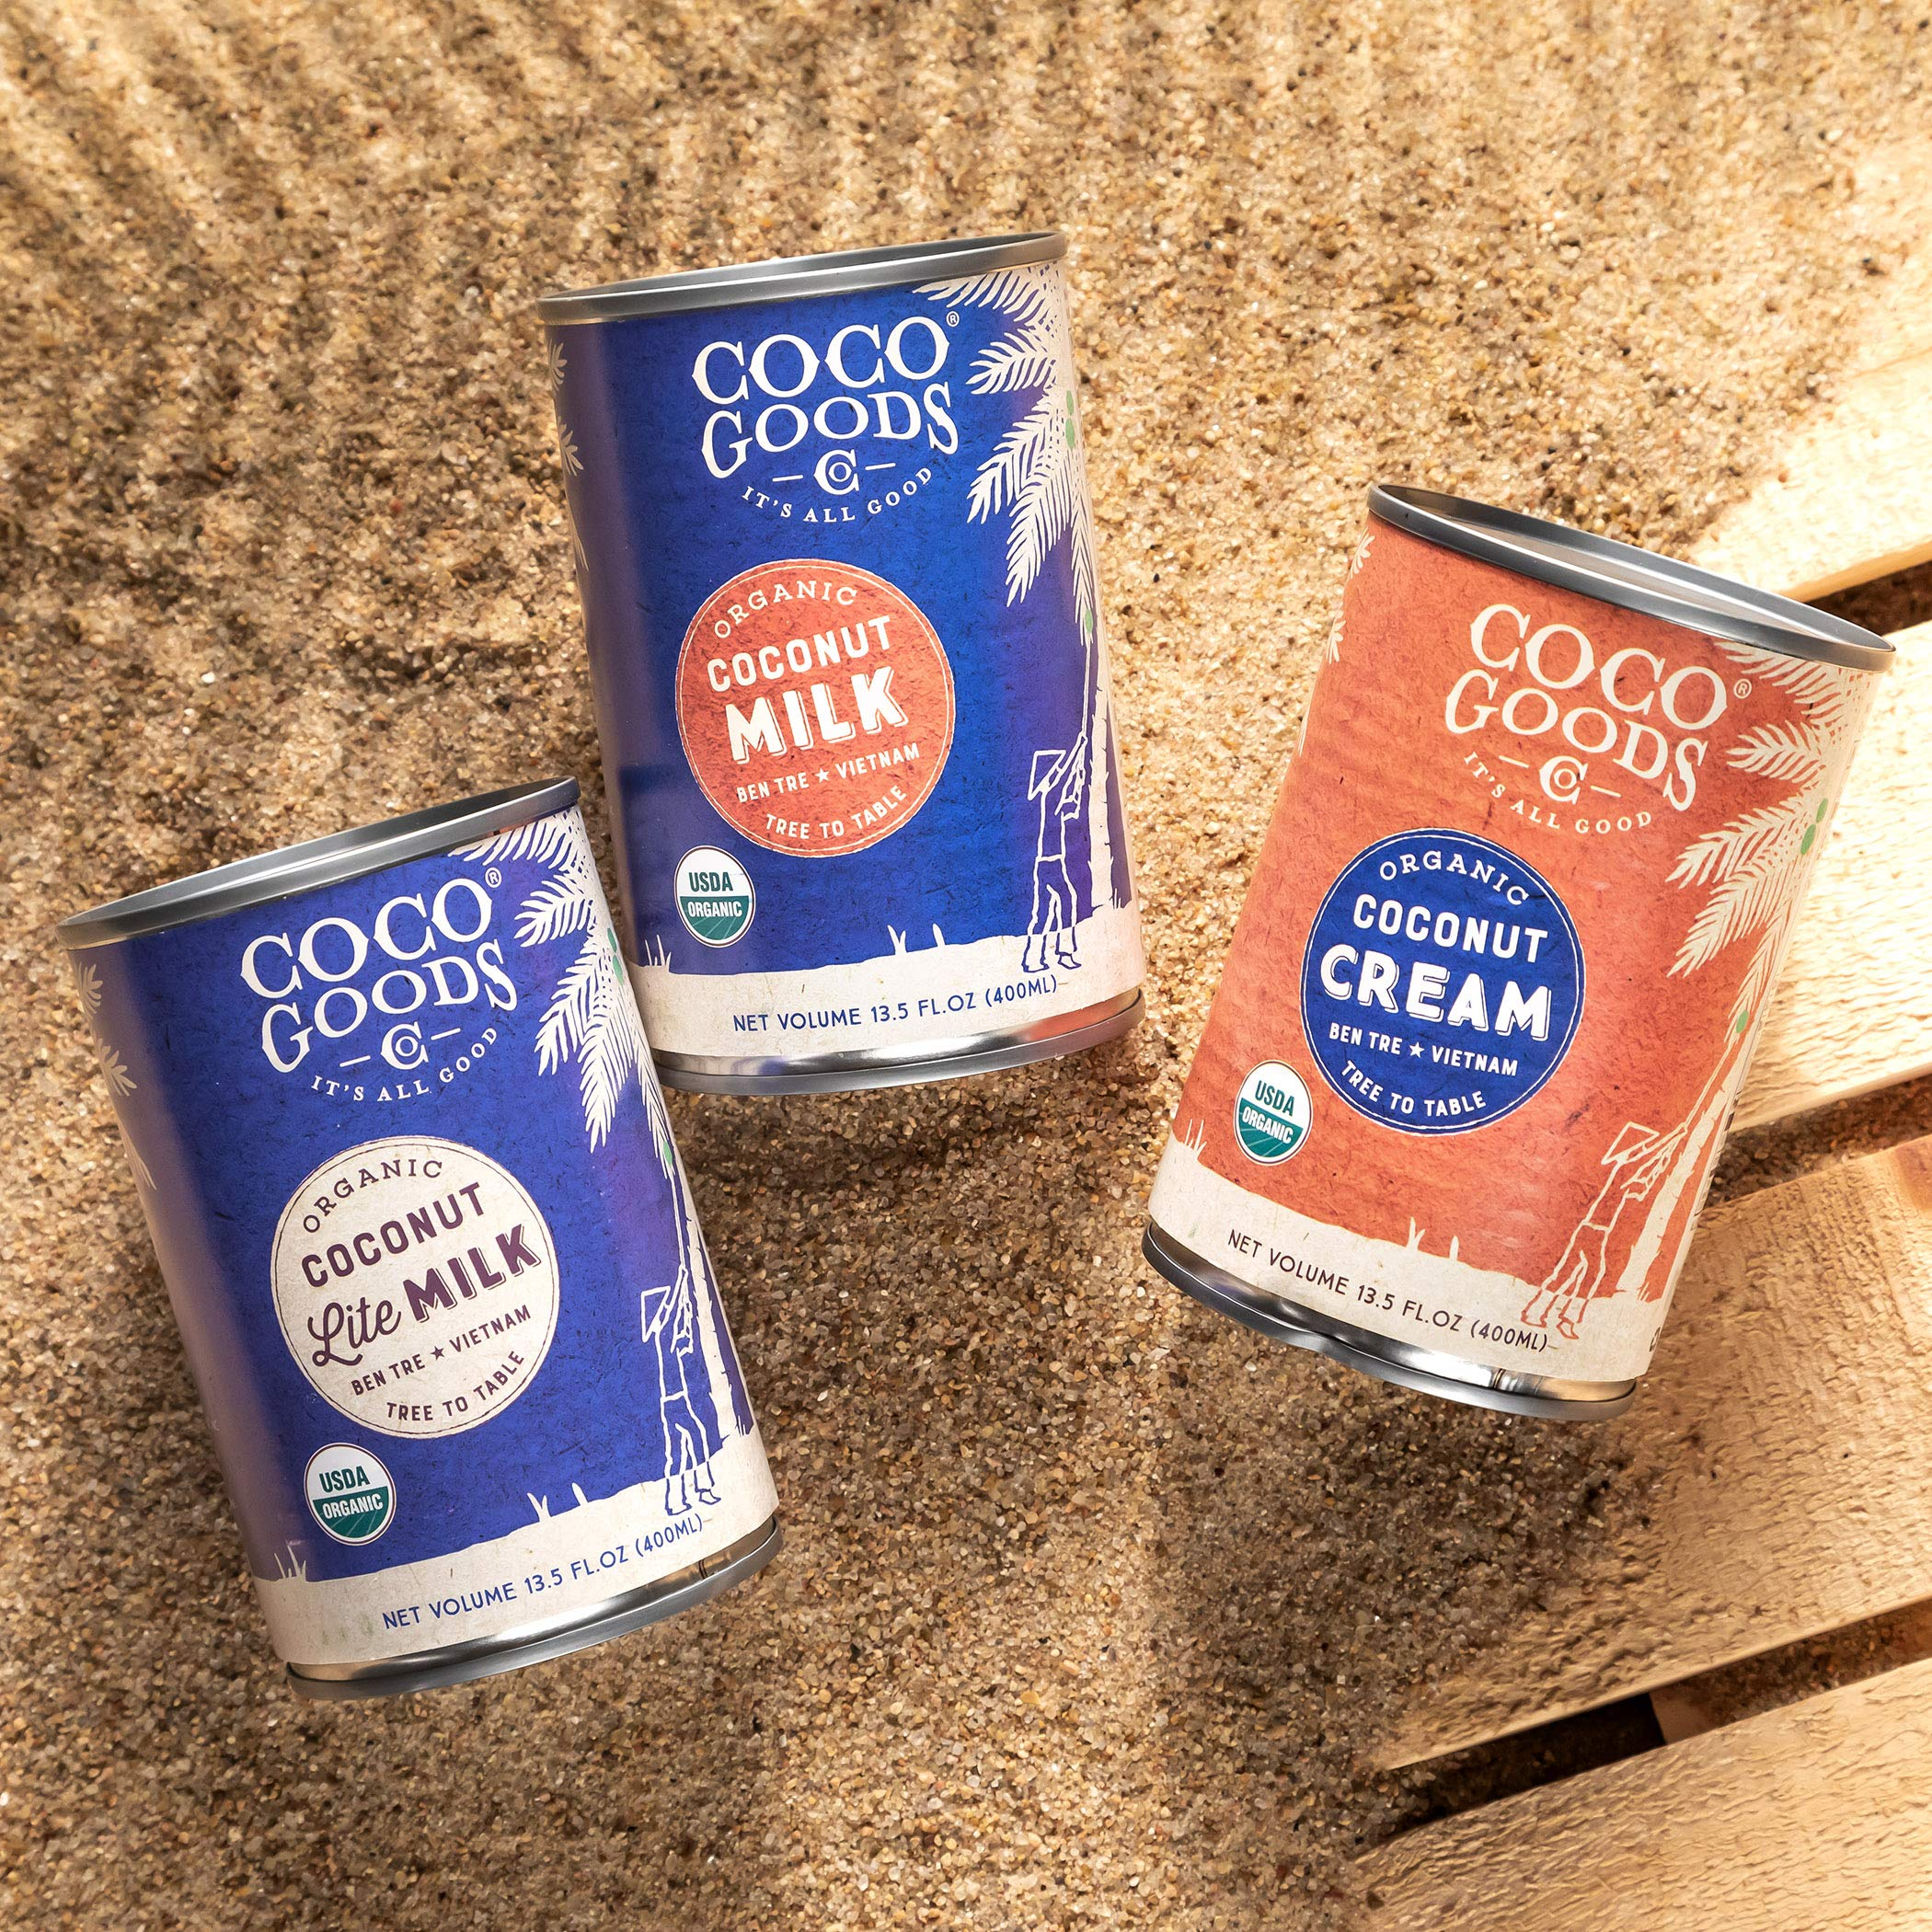 CocoGoods Co. Vietnam Single-Origin Organic Coconut Cream 13.5 oz - Gluten-free, Non-GMO, Vegan, & Dairy-free (Pack of 12) by COCOGOODSCO (Image #5)